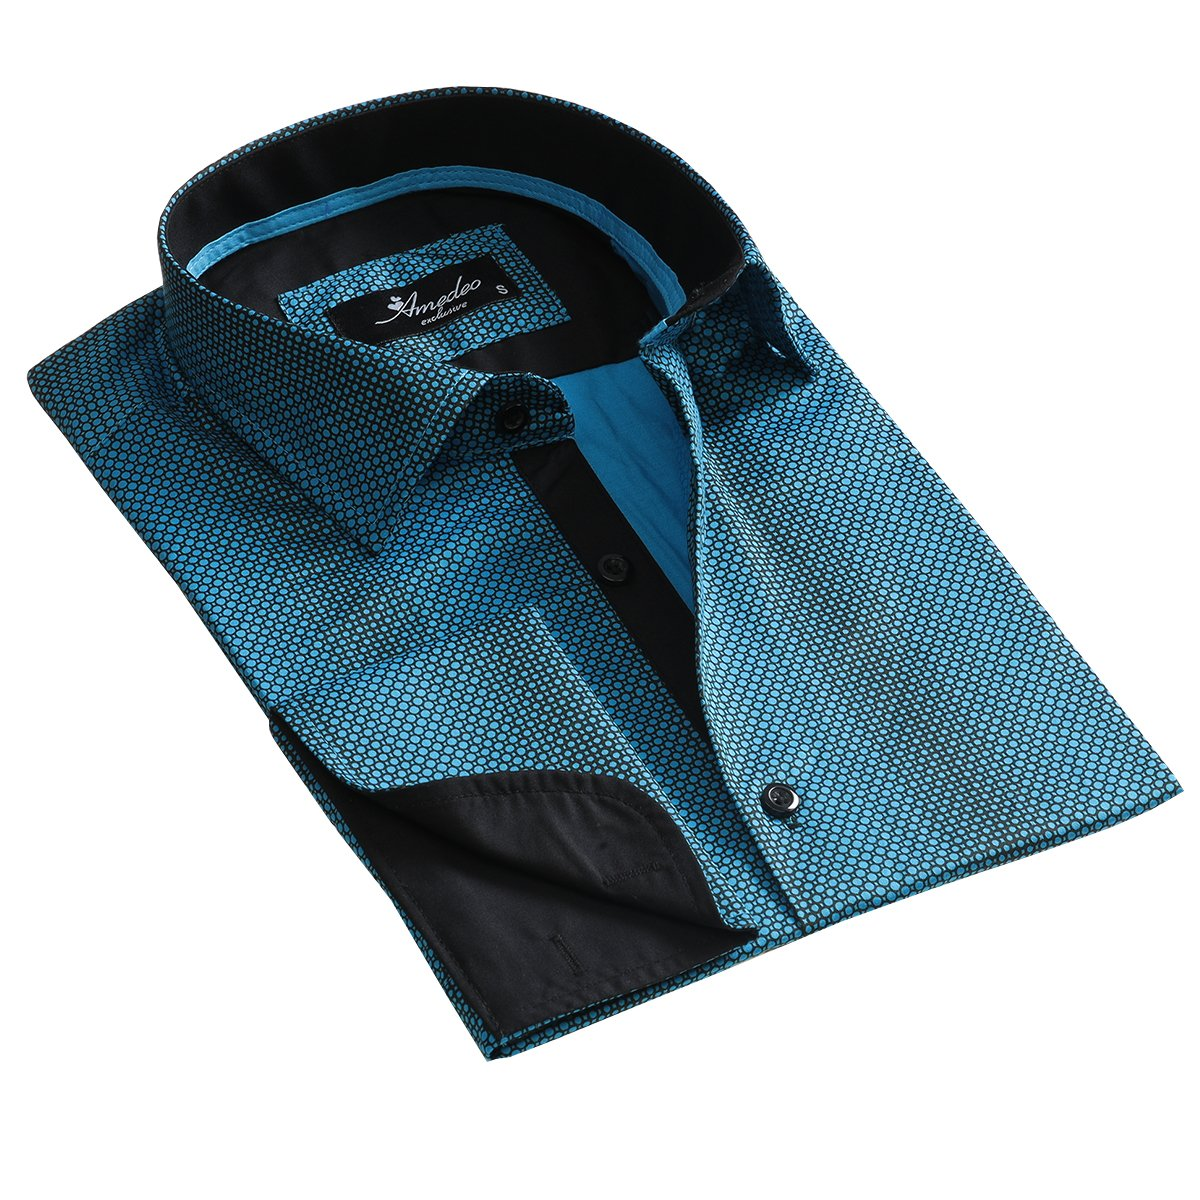 Turquoise Blue Design Mens Slim Fit Designer Dress Shirt - tailored Cotton Shirts for Work and Casual Wear - Amedeo Exclusive